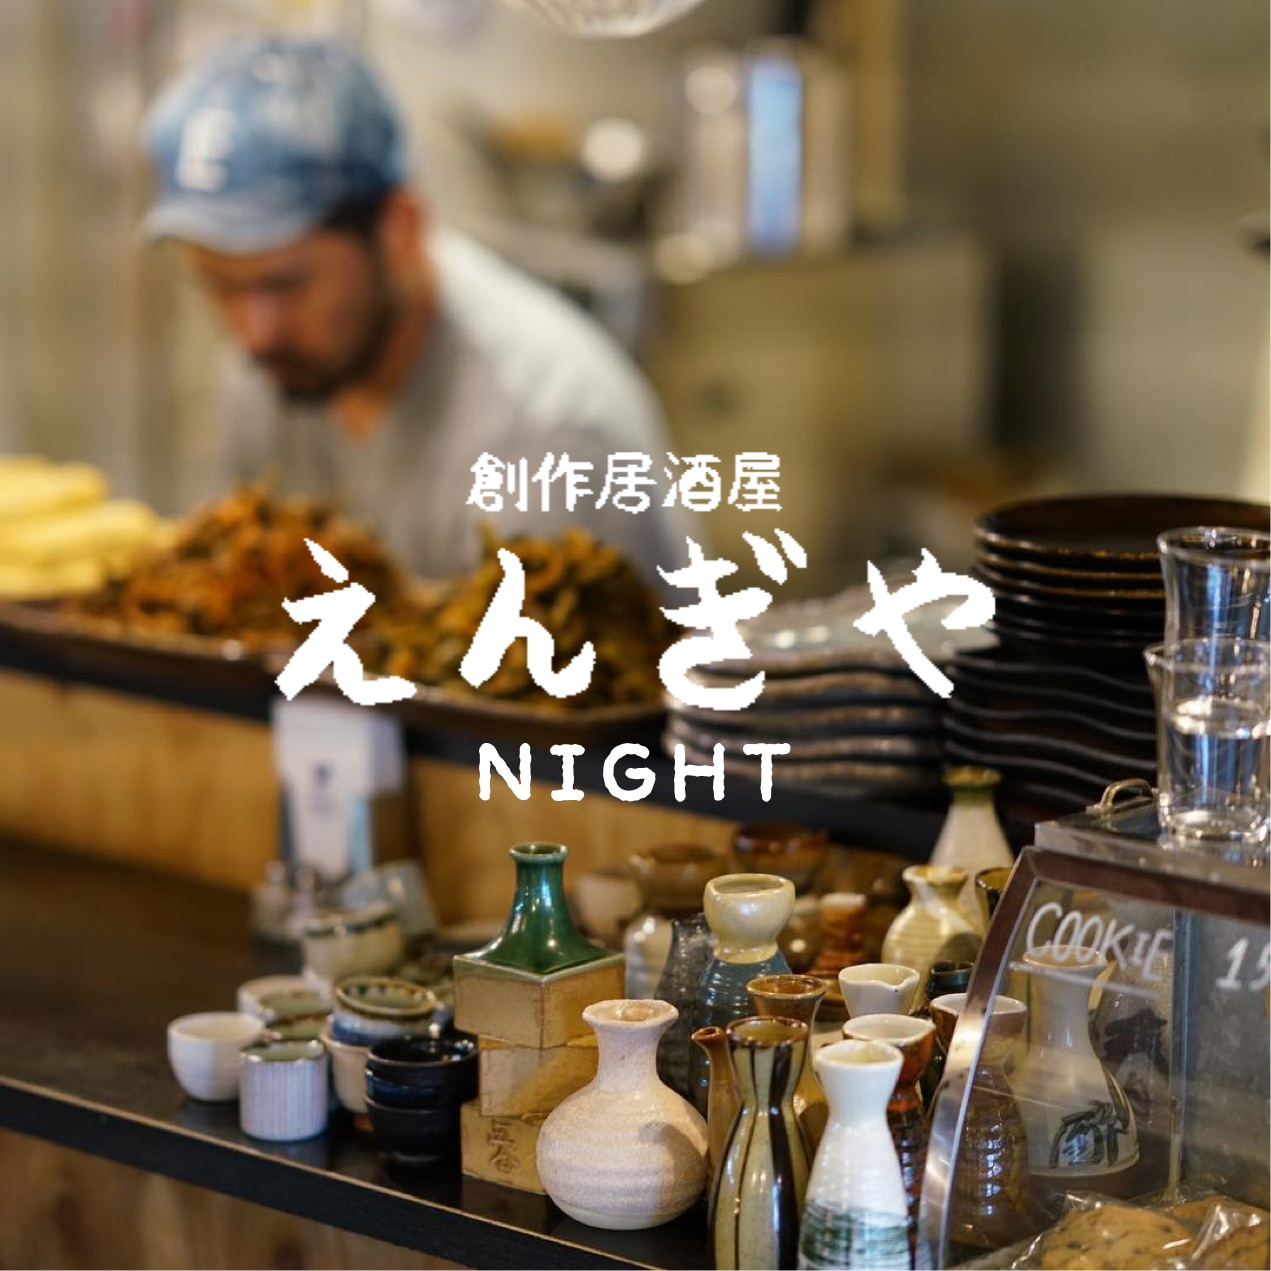 えんぎやNIGHT - HEDGEHOG DINER